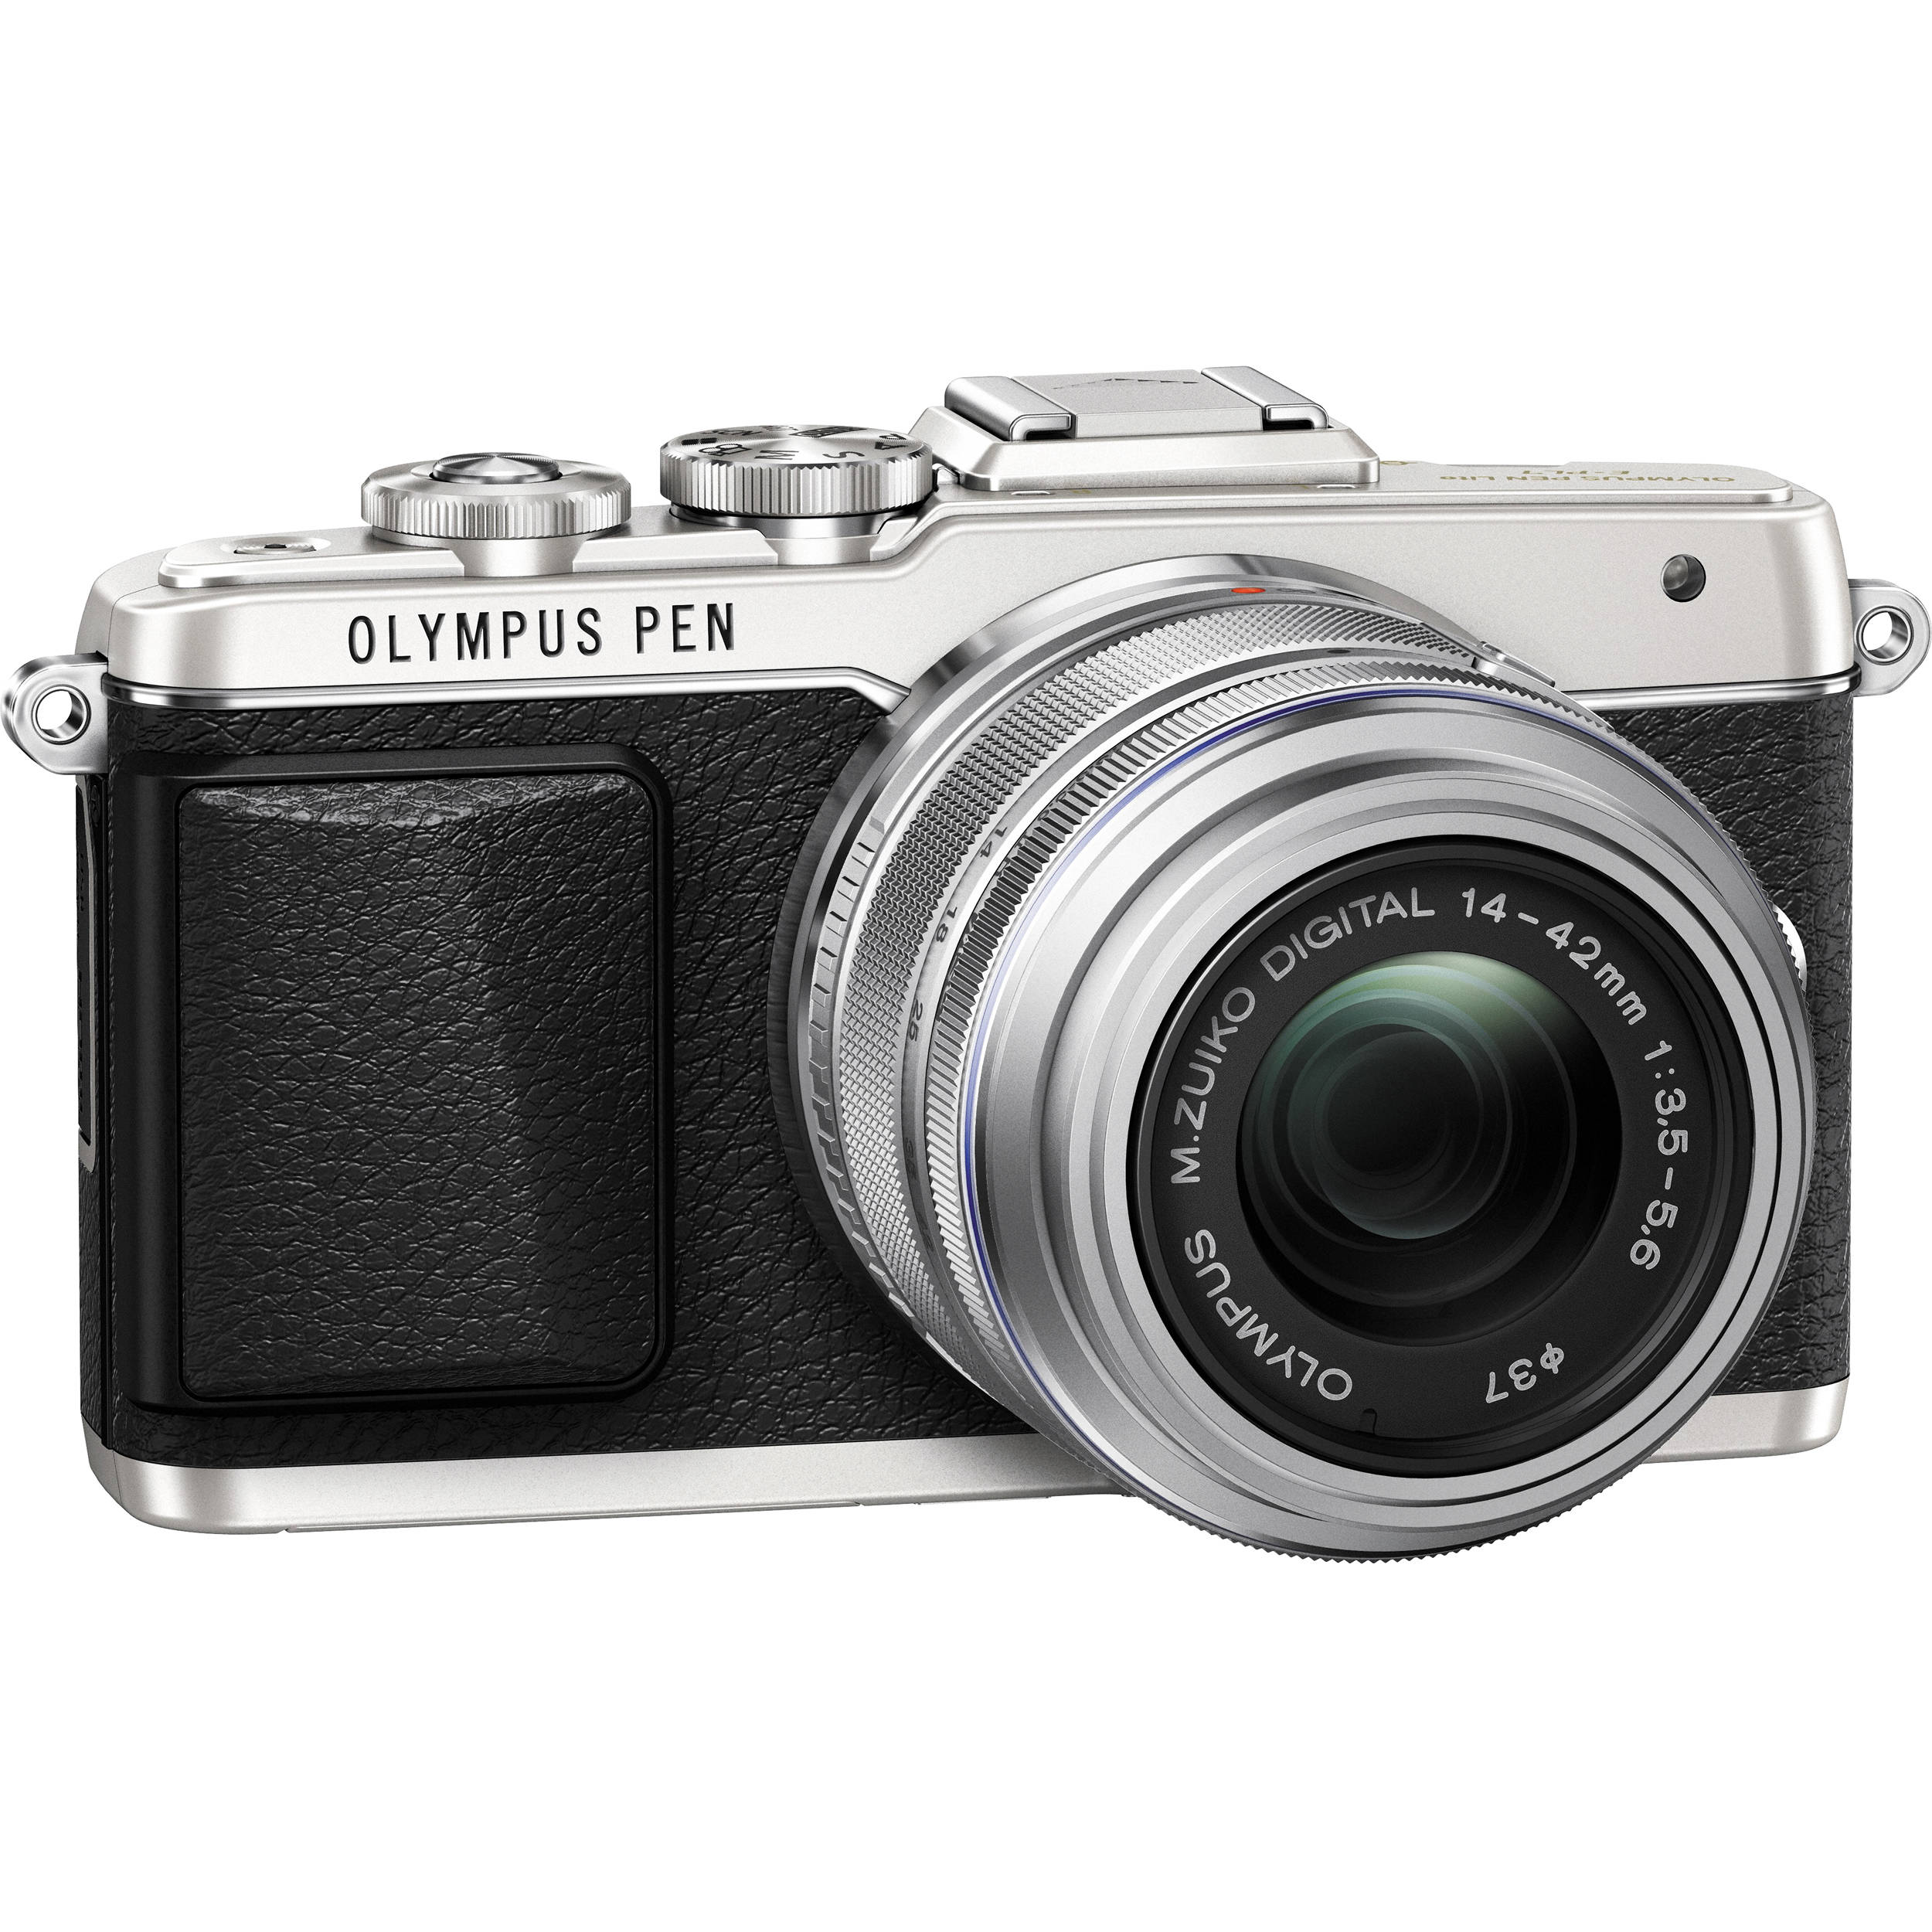 Olympus Digital Camera: Olympus PEN E-PL7 Mirrorless Micro Four Thirds